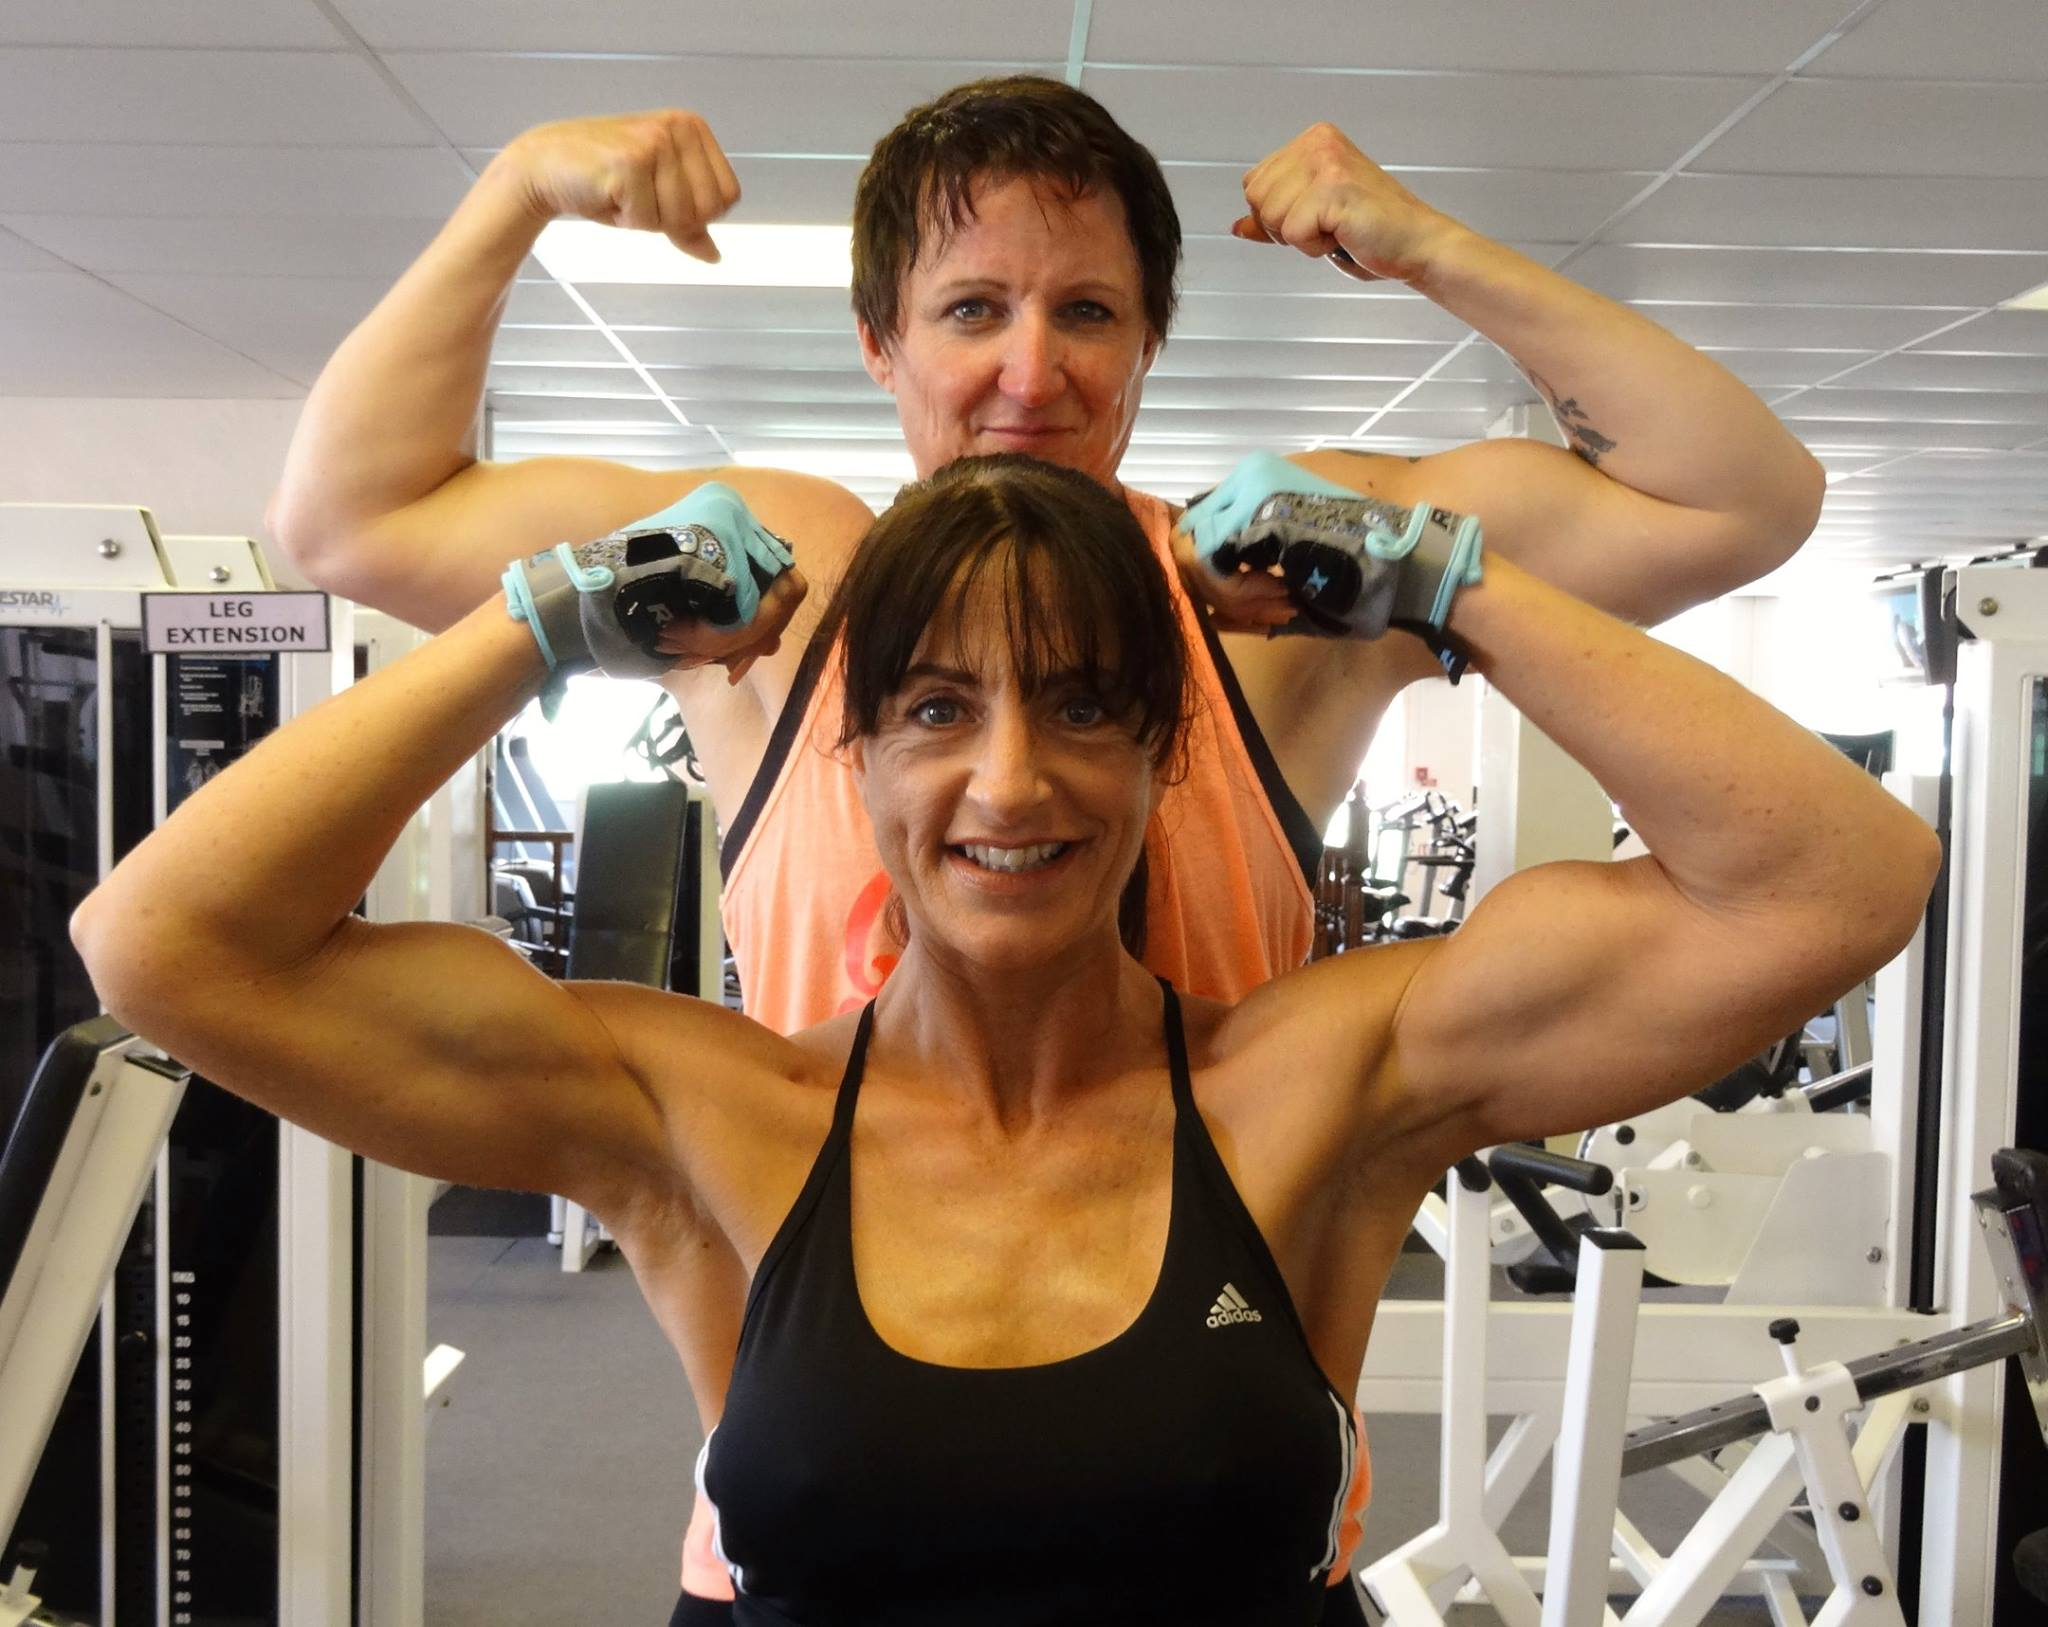 a lady showing her bicep muscle